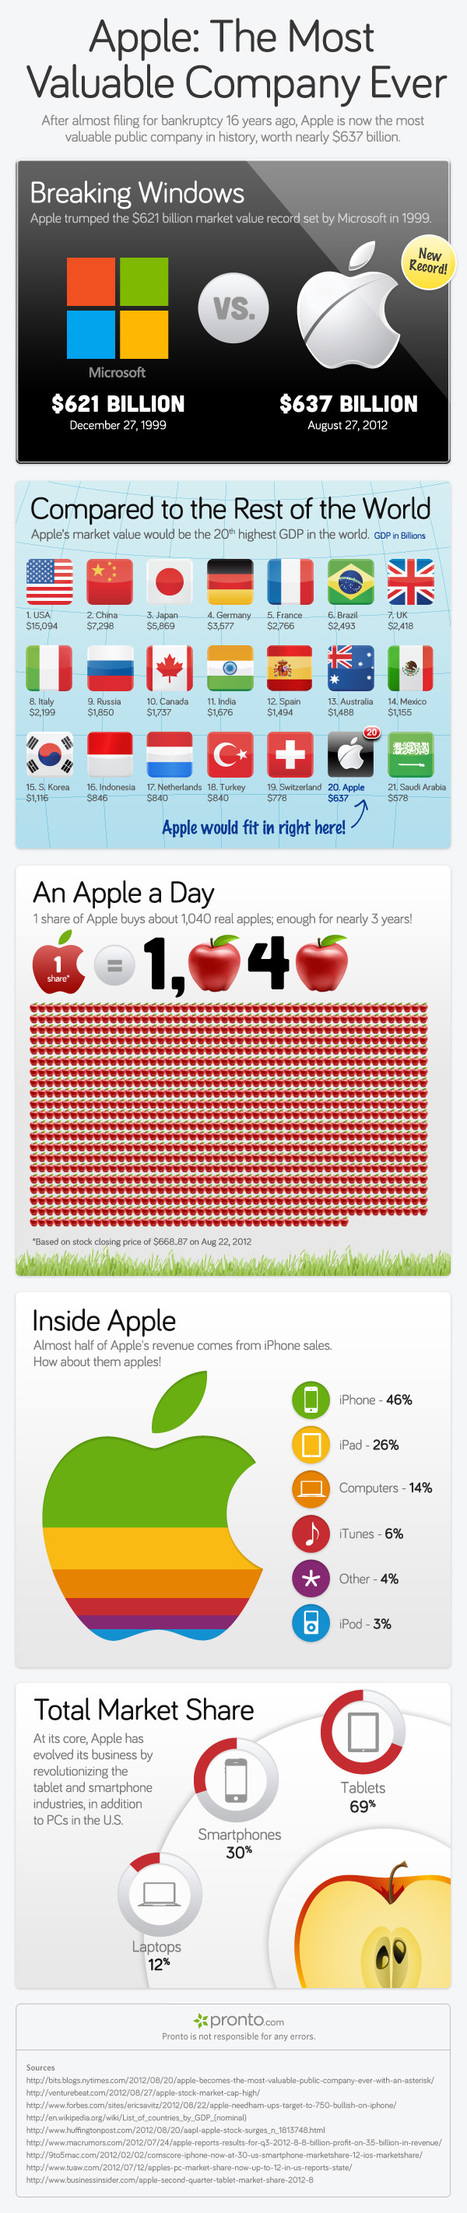 Apple: The Most Valuable Company Ever (Infographic) | Corporate, Employee and Marketing Communication | Scoop.it